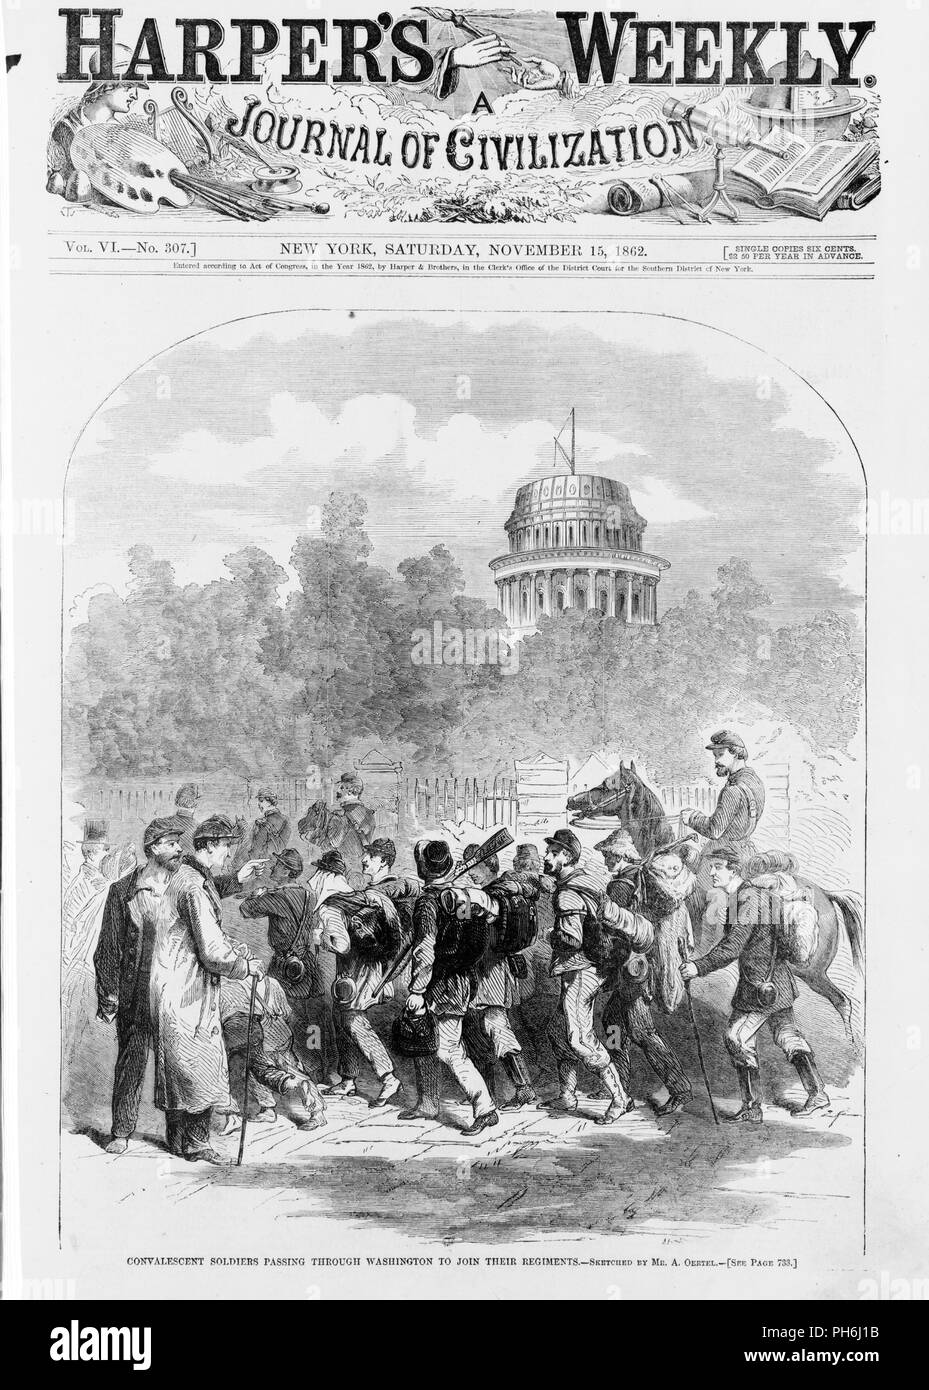 From Harper's Weekly, November 15, 1862. The 2nd Battle of Manassas occurred in 1862, from which the Union retreated to Washington, D.C. and the Capitol became a hospital for causalities. Stock Photo